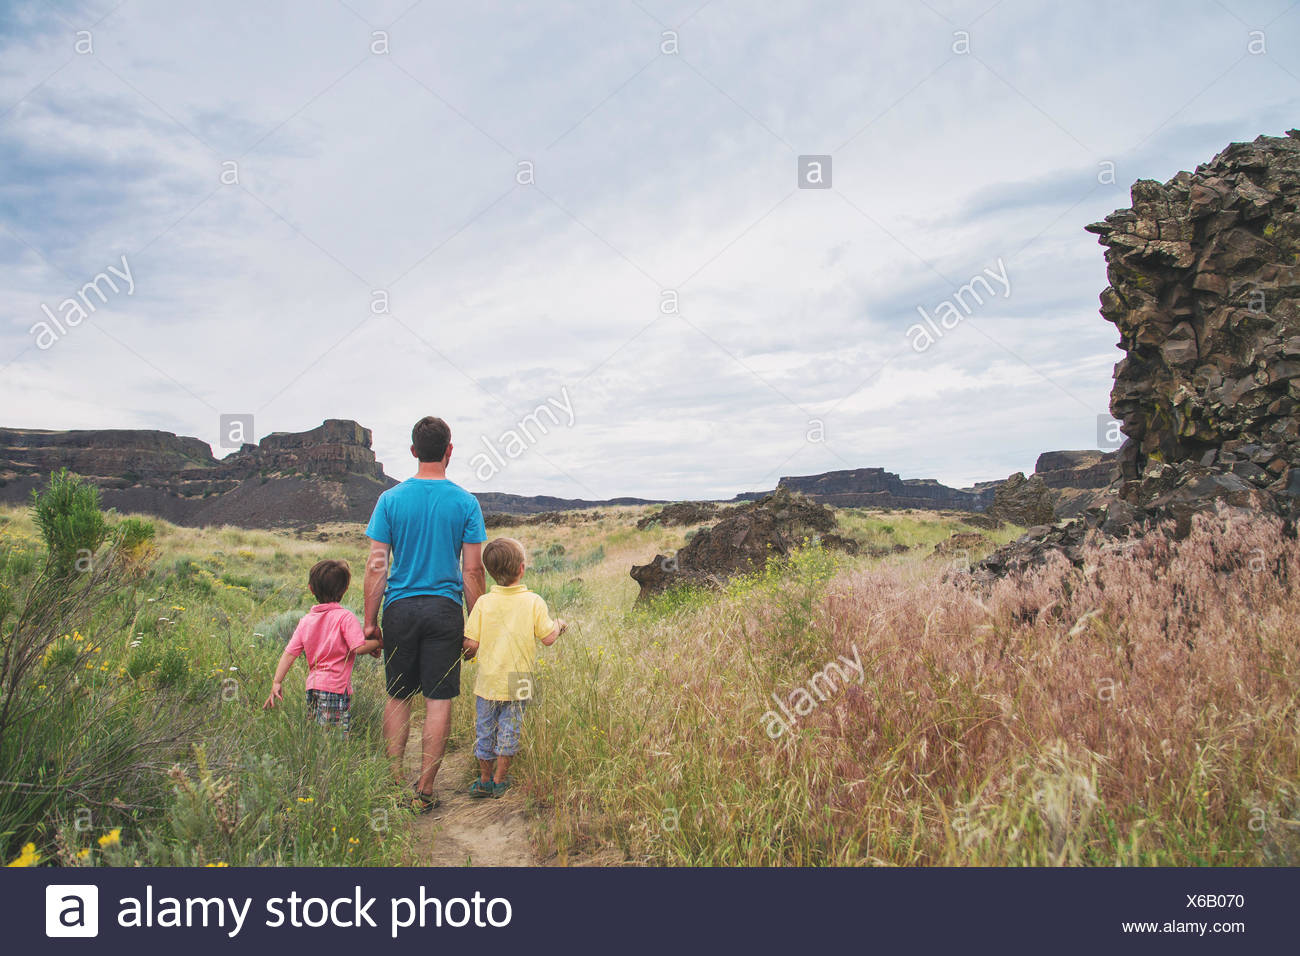 Rear view of father walking with two sons - Stock Image